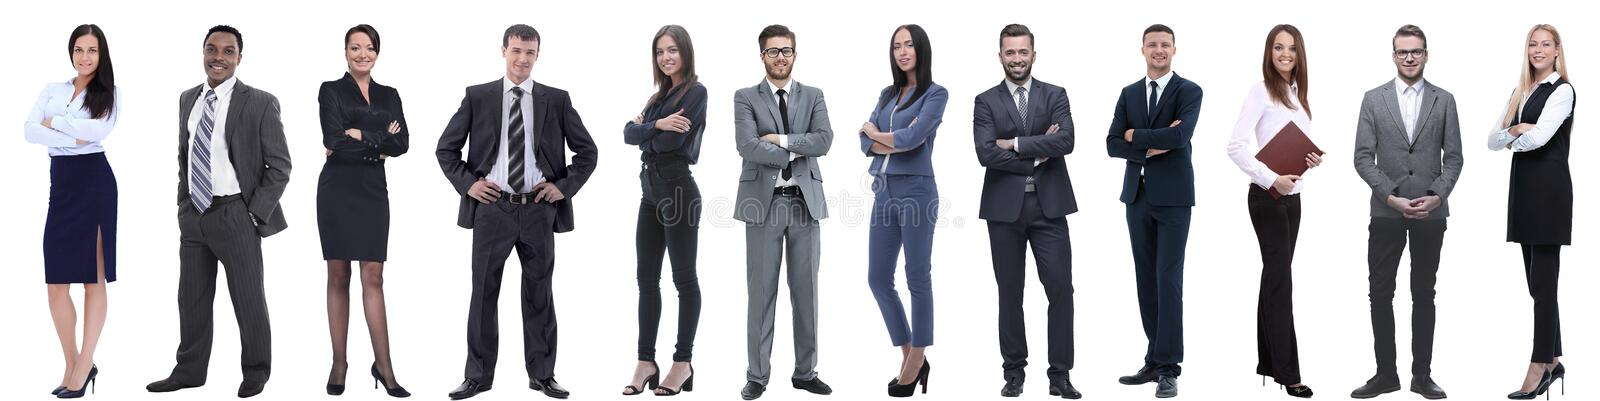 Group of successful business people isolated on white royalty free stock photo